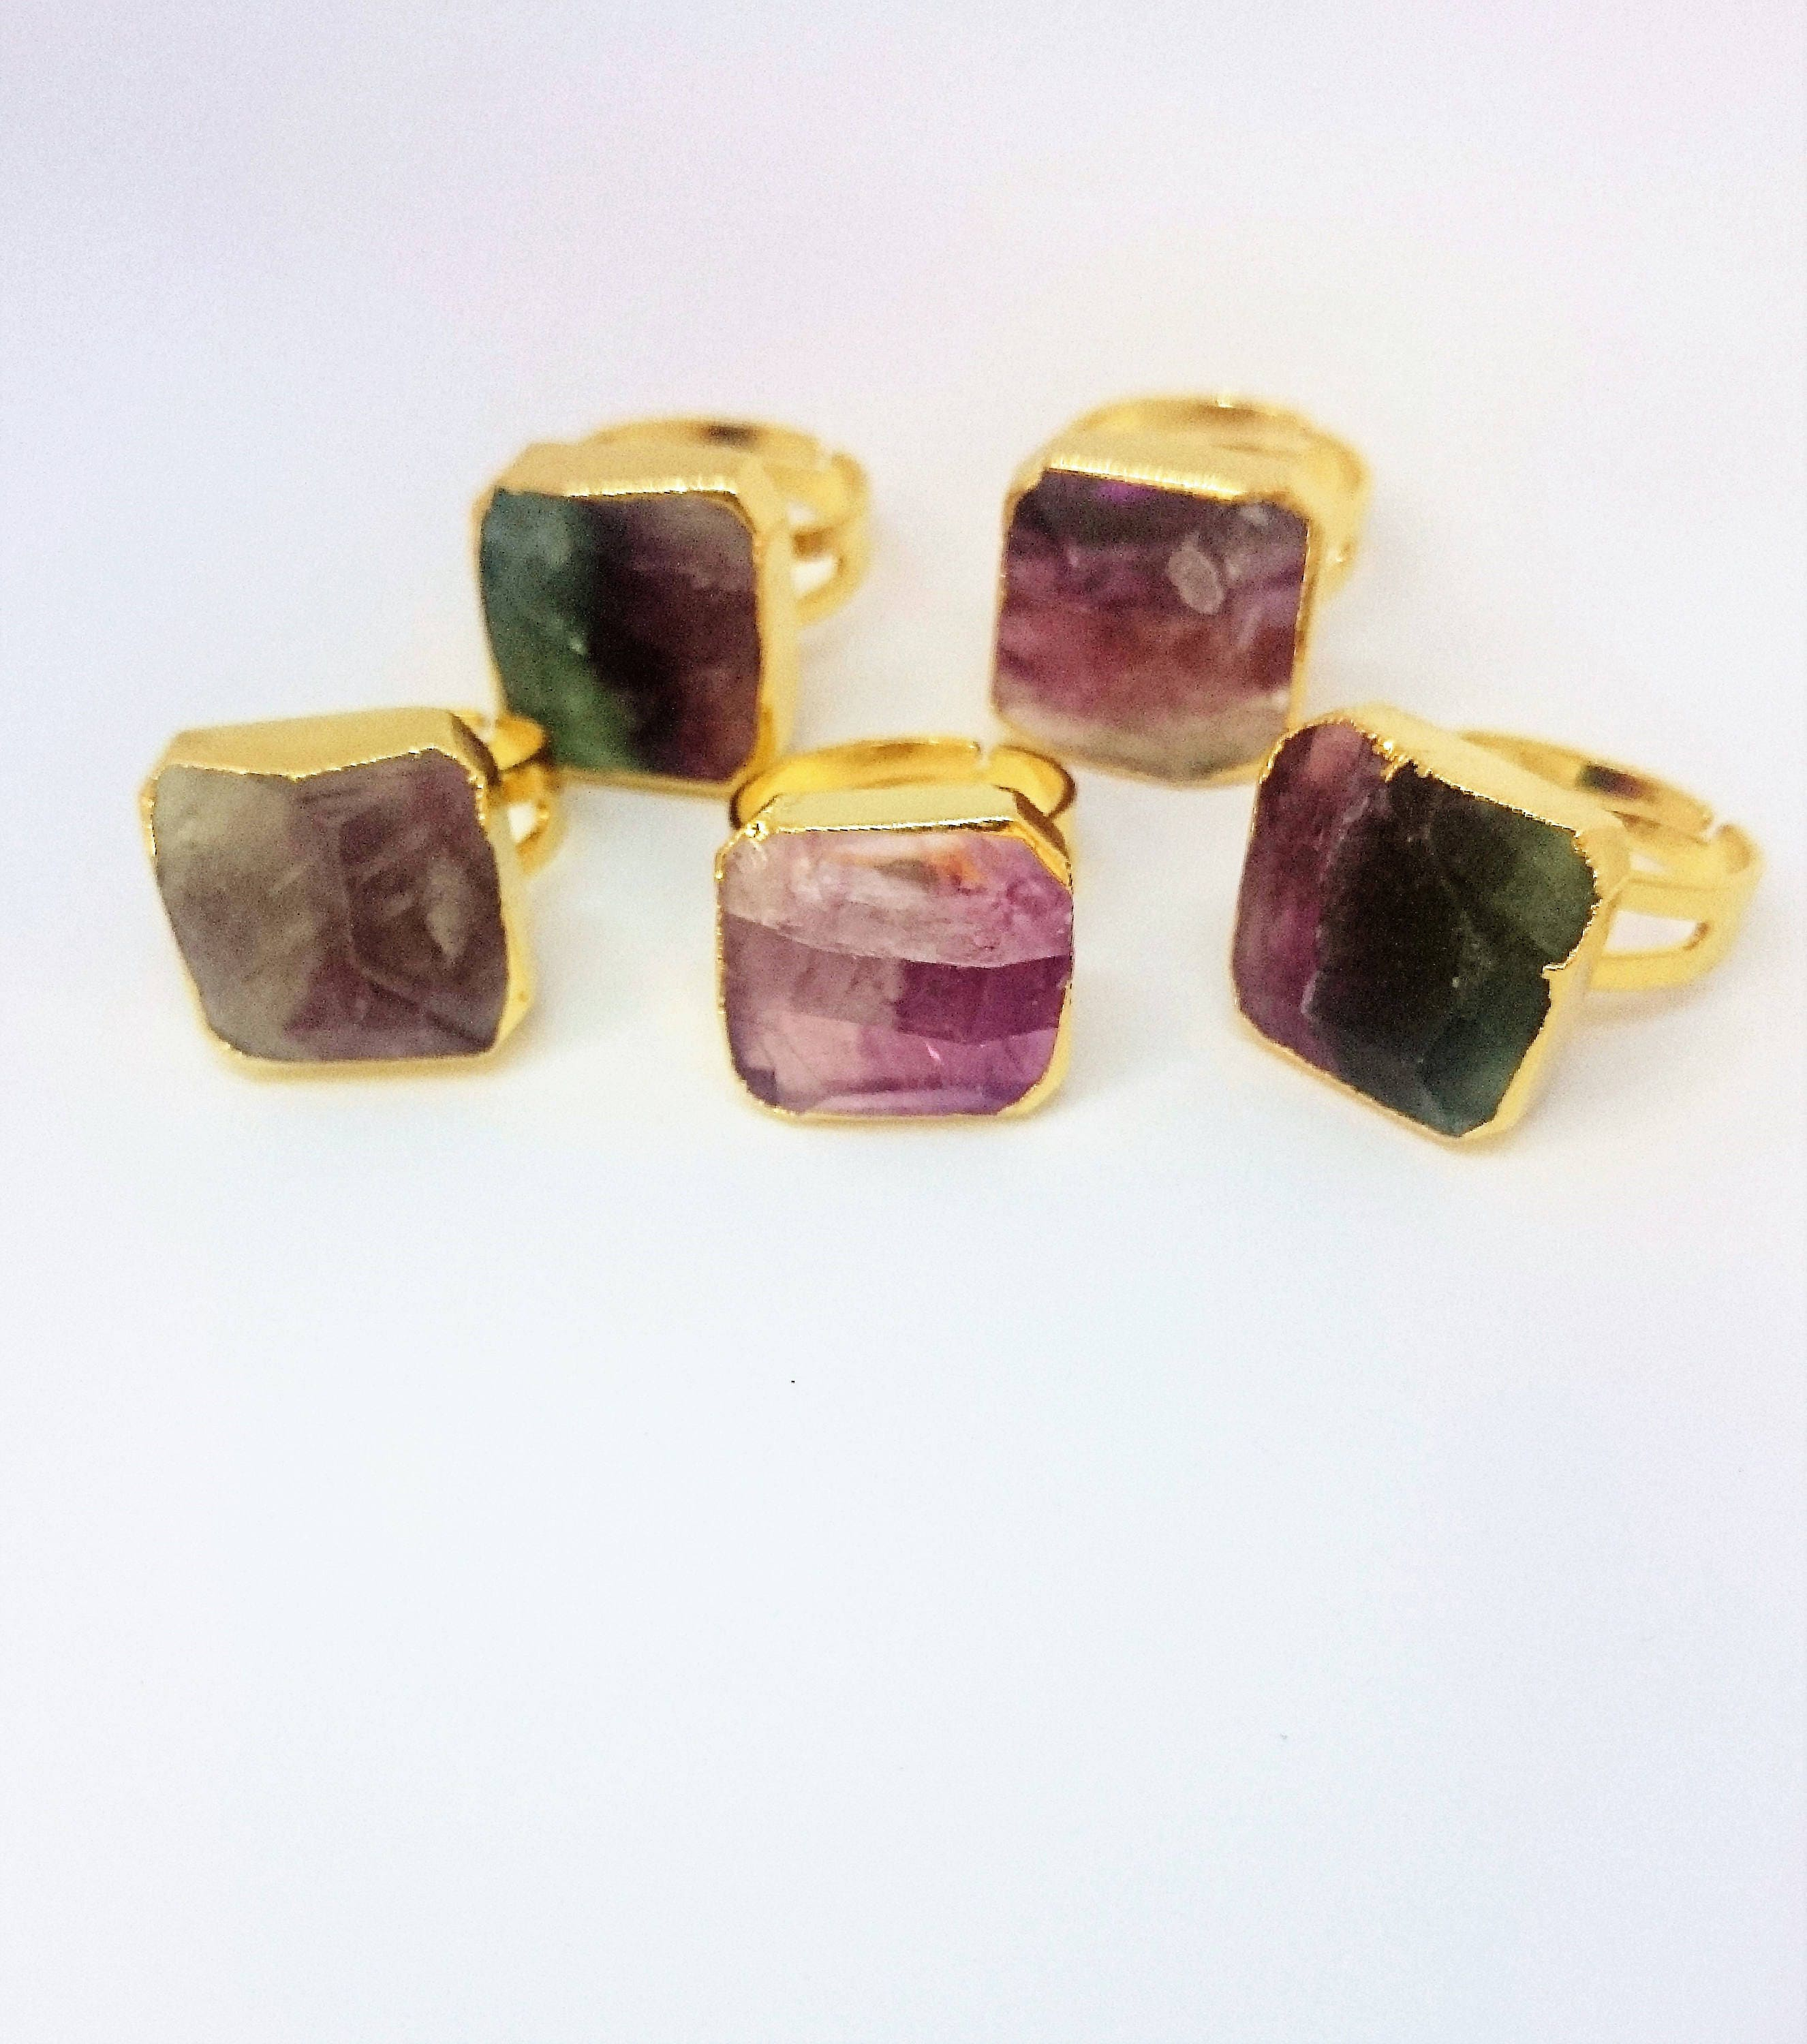 jewelry rings jewel setting fluorite bug body adornment elegance handmade white free accessory purple green silver jewellery en huge striped toggle sterling stone cabochon teardrop photo glamor clasp clear bracelet fancy necklace gem bead bezel black gemstone images fashion